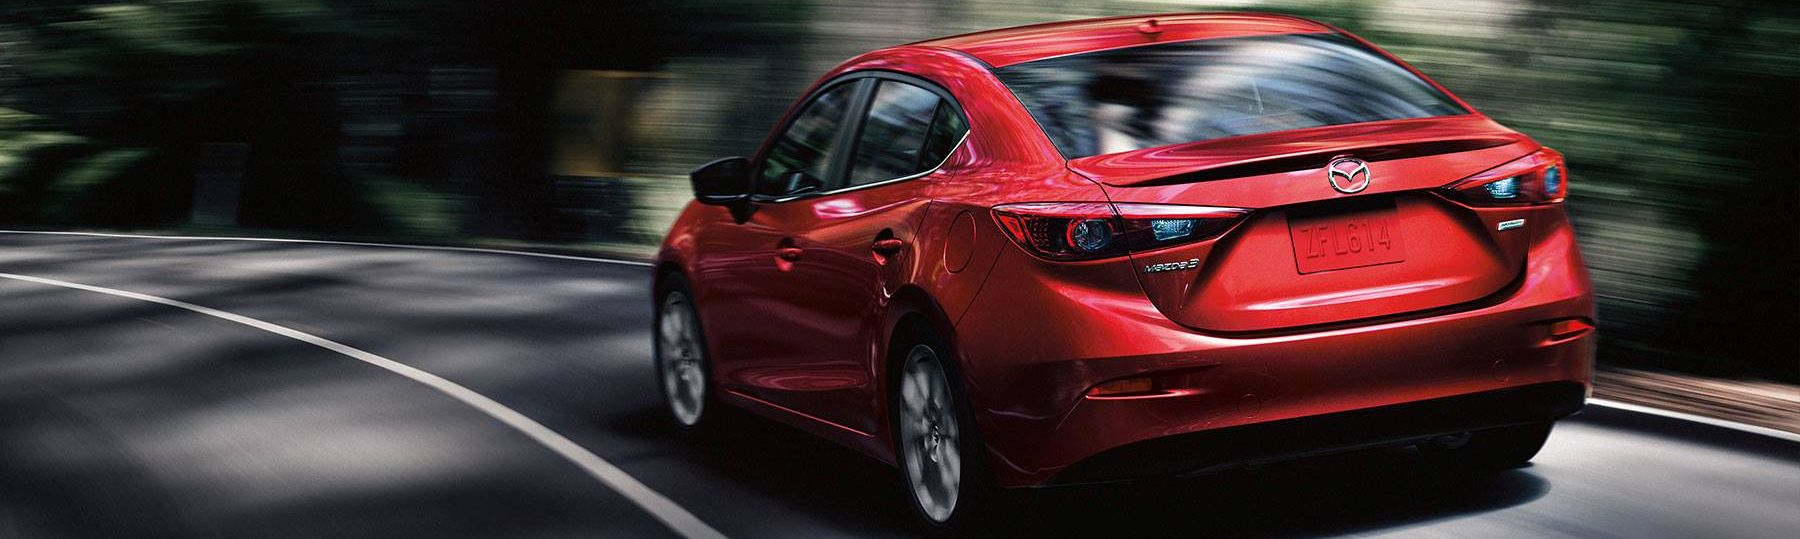 2018 Mazda3 Leasing In Gaithersburg, MD